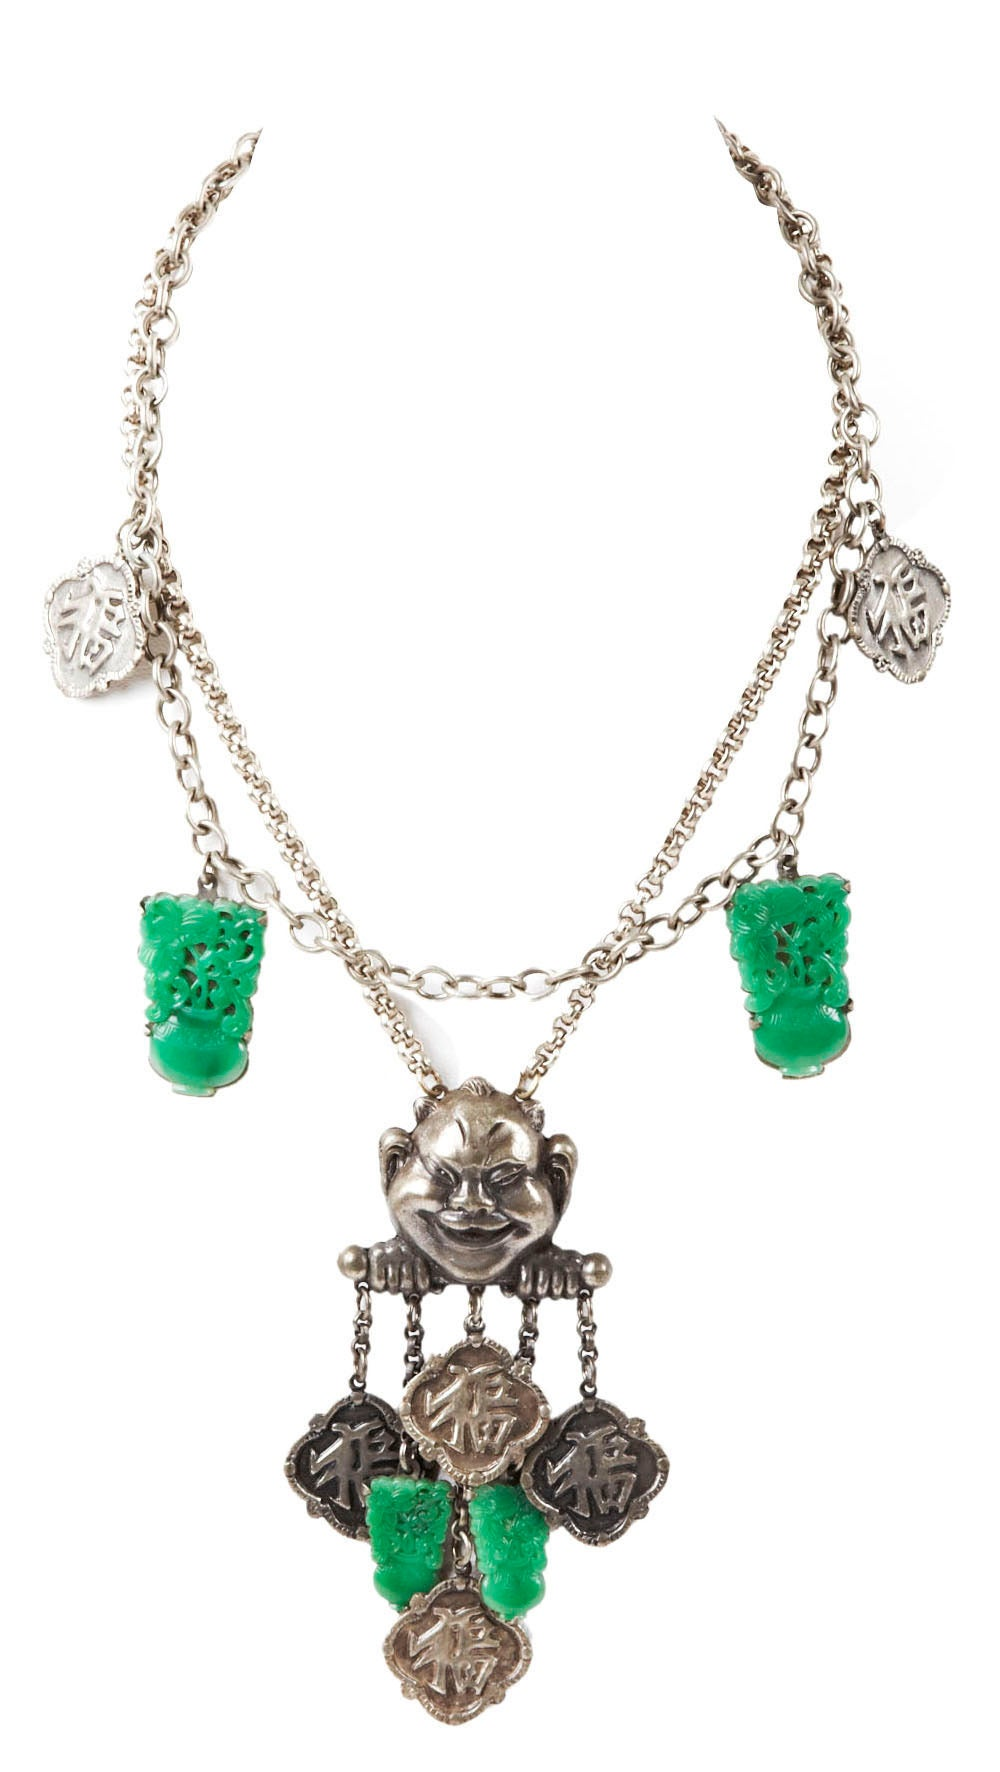 """Chinese style Art Deco grinning buddha necklace  of antique silvered metal with faux imperial jade peking glass charms and Chinese money fobs. 1940's USA. Shortest length 16"""", Drop 4.5"""". Excellent condition."""